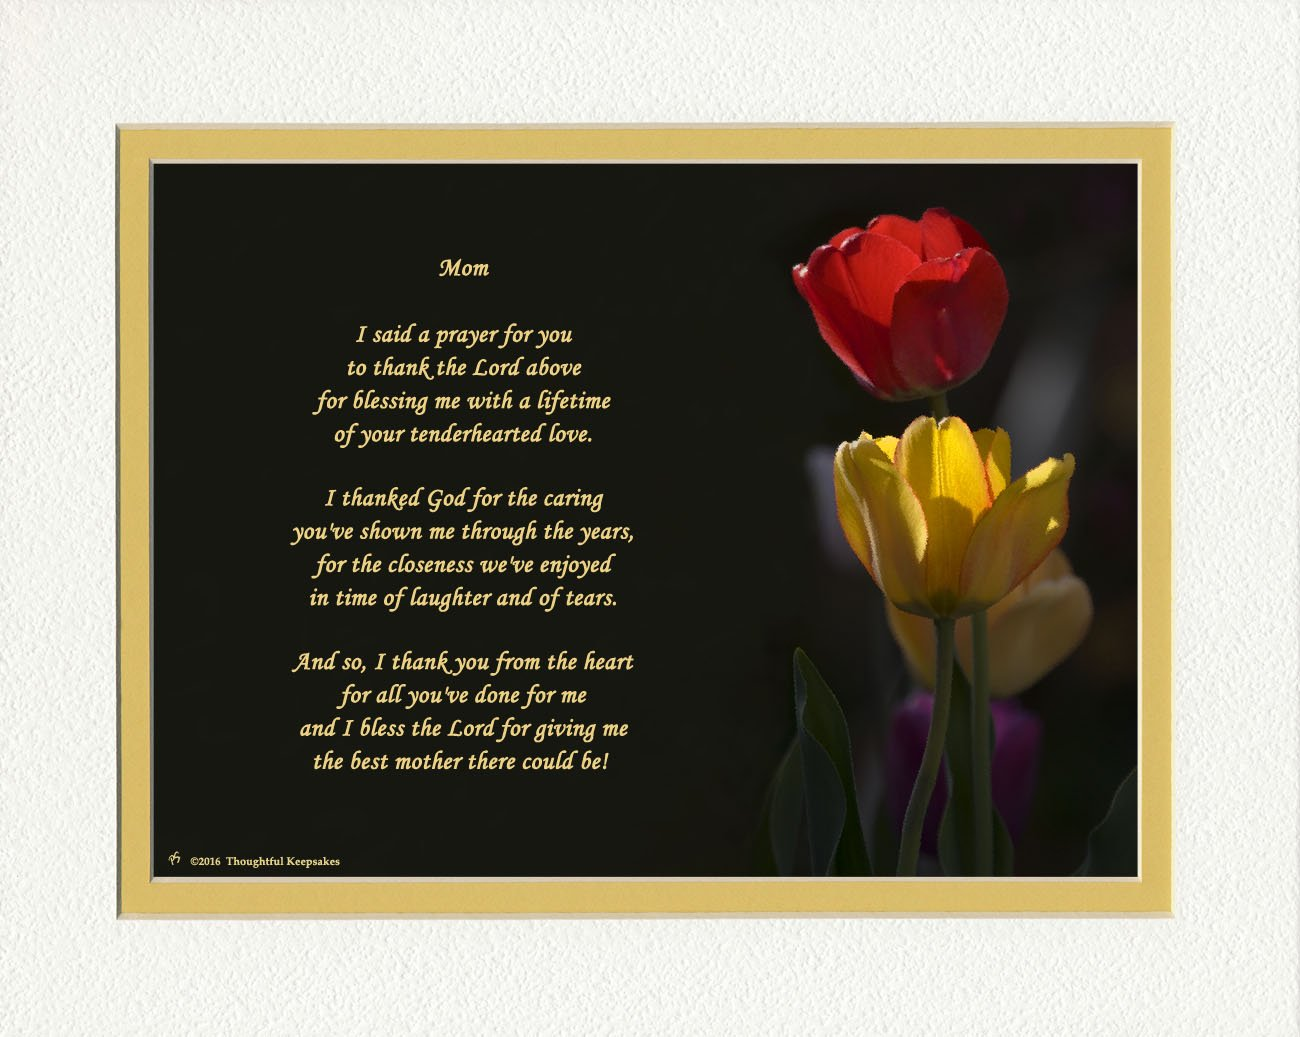 Gift for Mom with ''Thank You Prayer for Best Mom'' Poem. Red & Yellow Tulips Photo, 8x10 Double Matted. Special Mother Gifts for Birthday, Christmas, Wedding or Mother's Day Gift